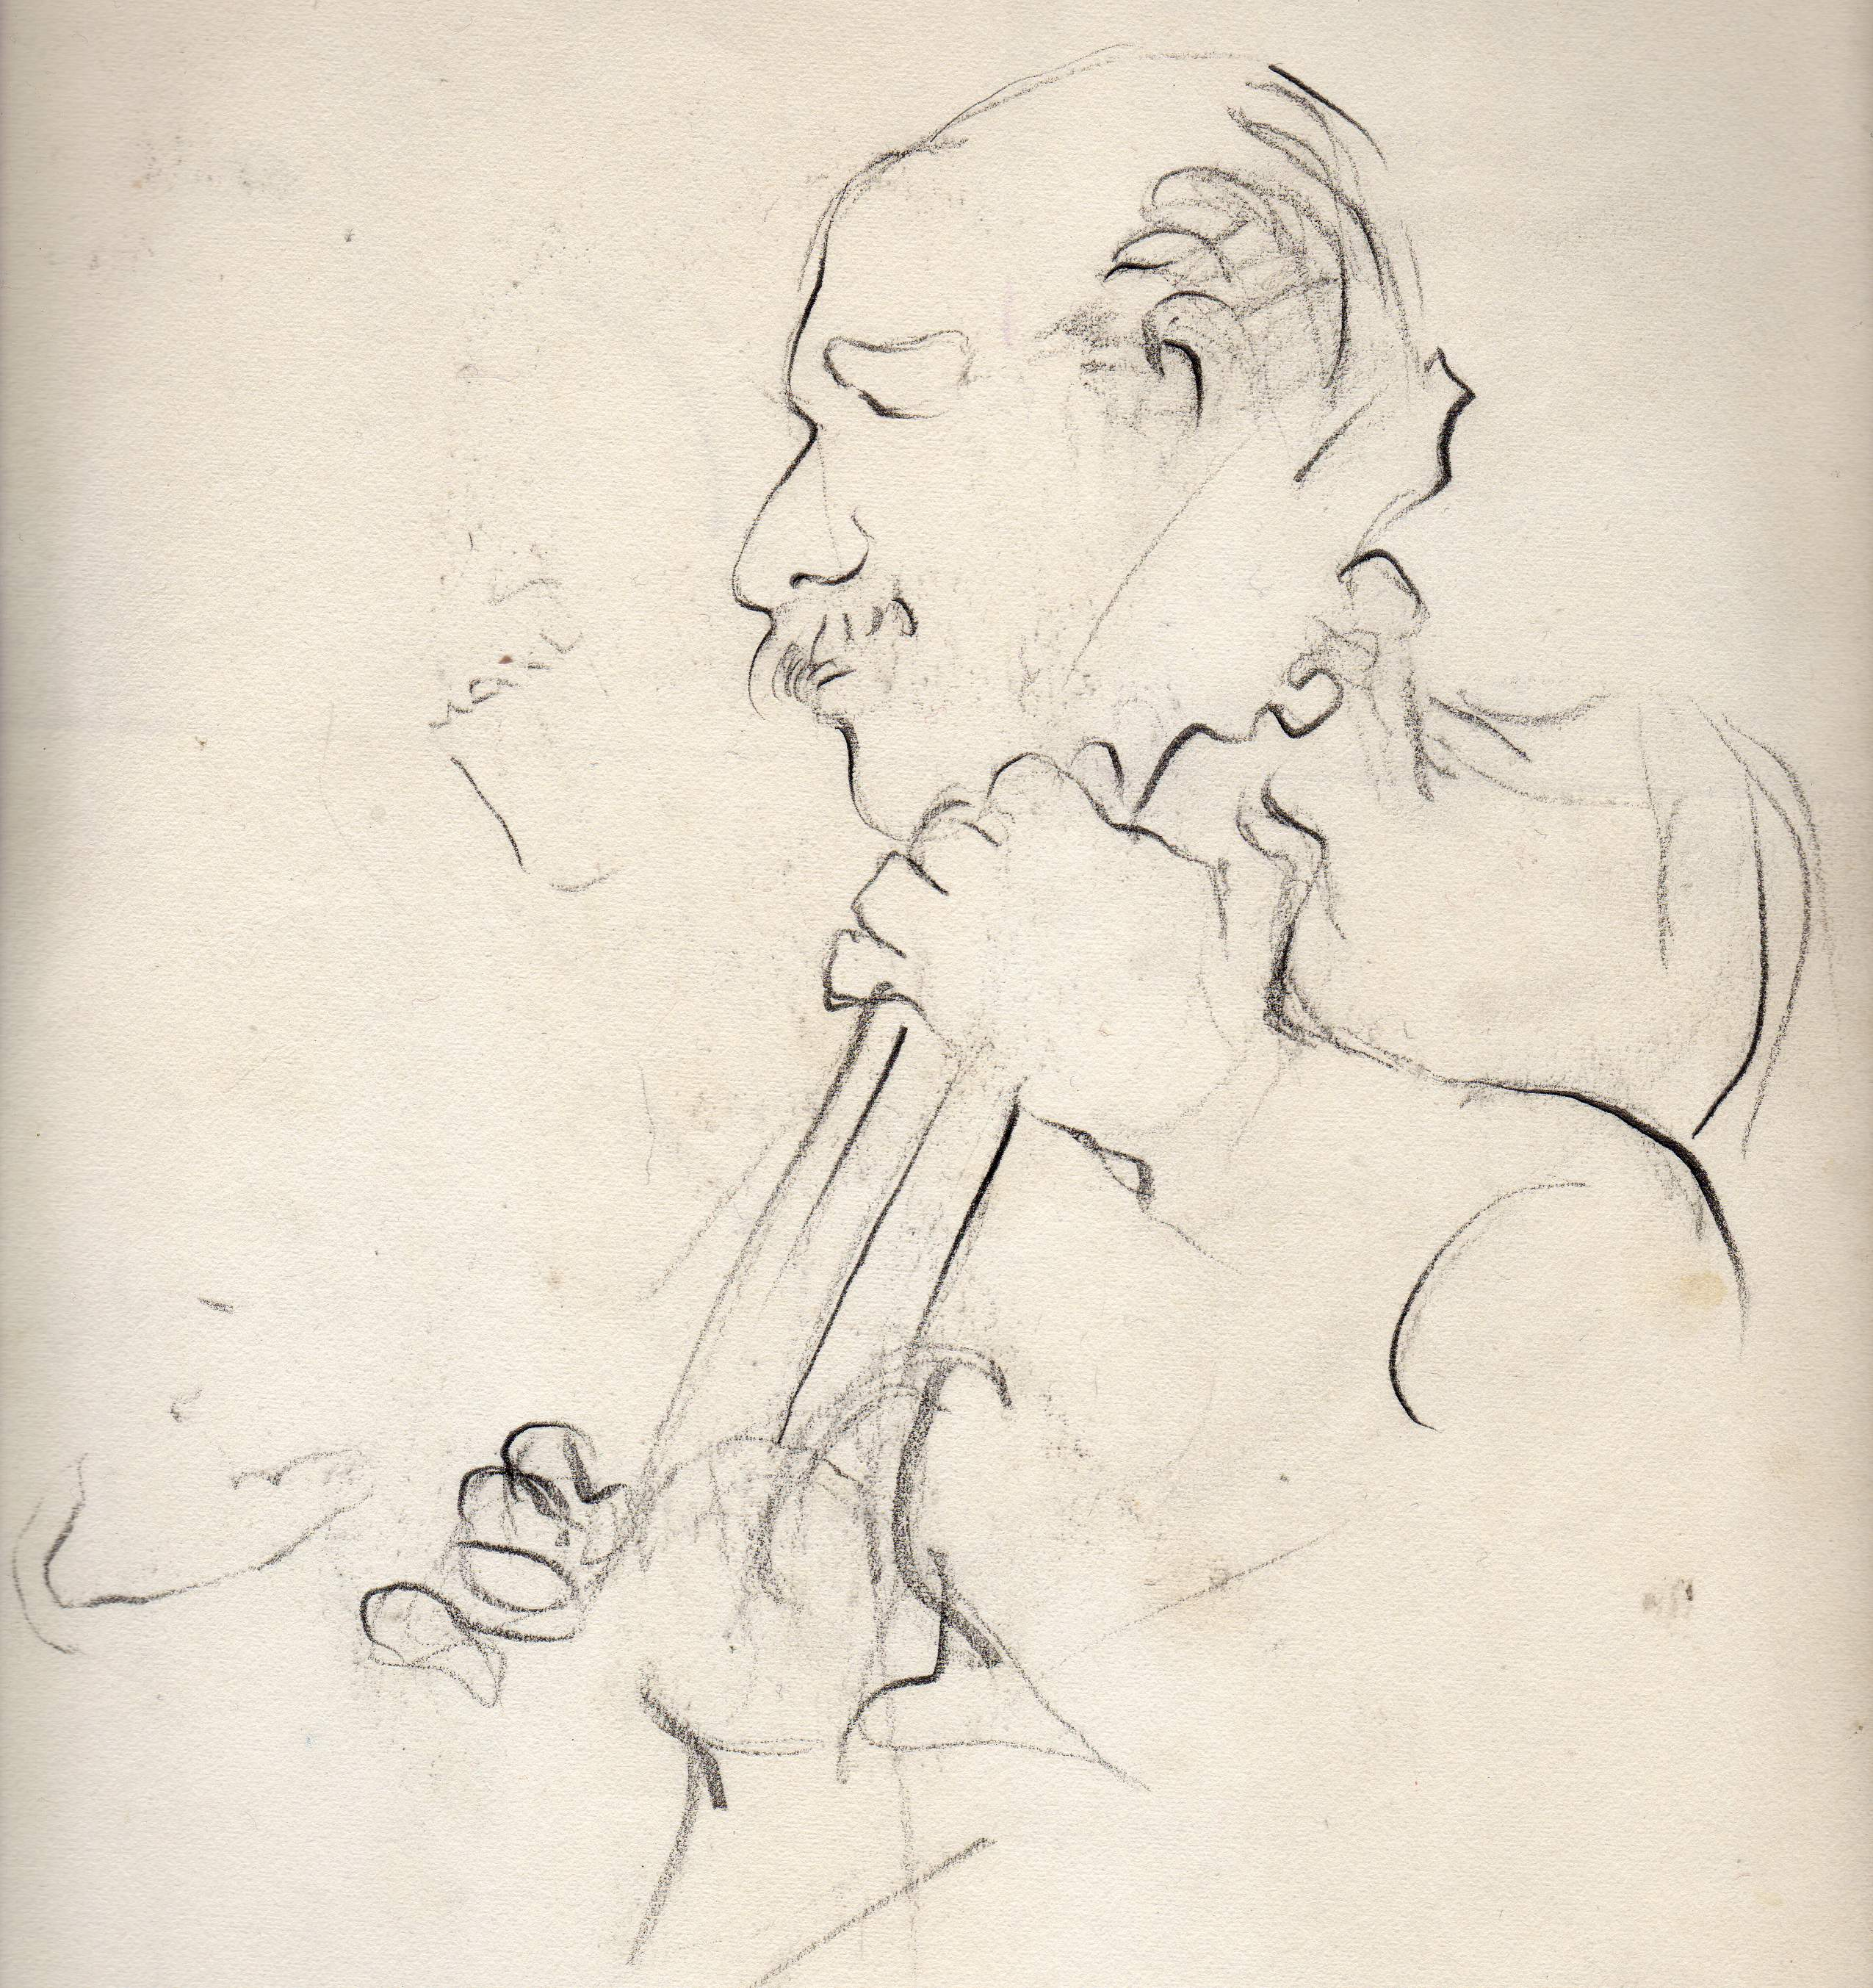 Joe Pass,at the Light House, Santa Monica CA April 19,1980 Drawing by Sharyl Gates